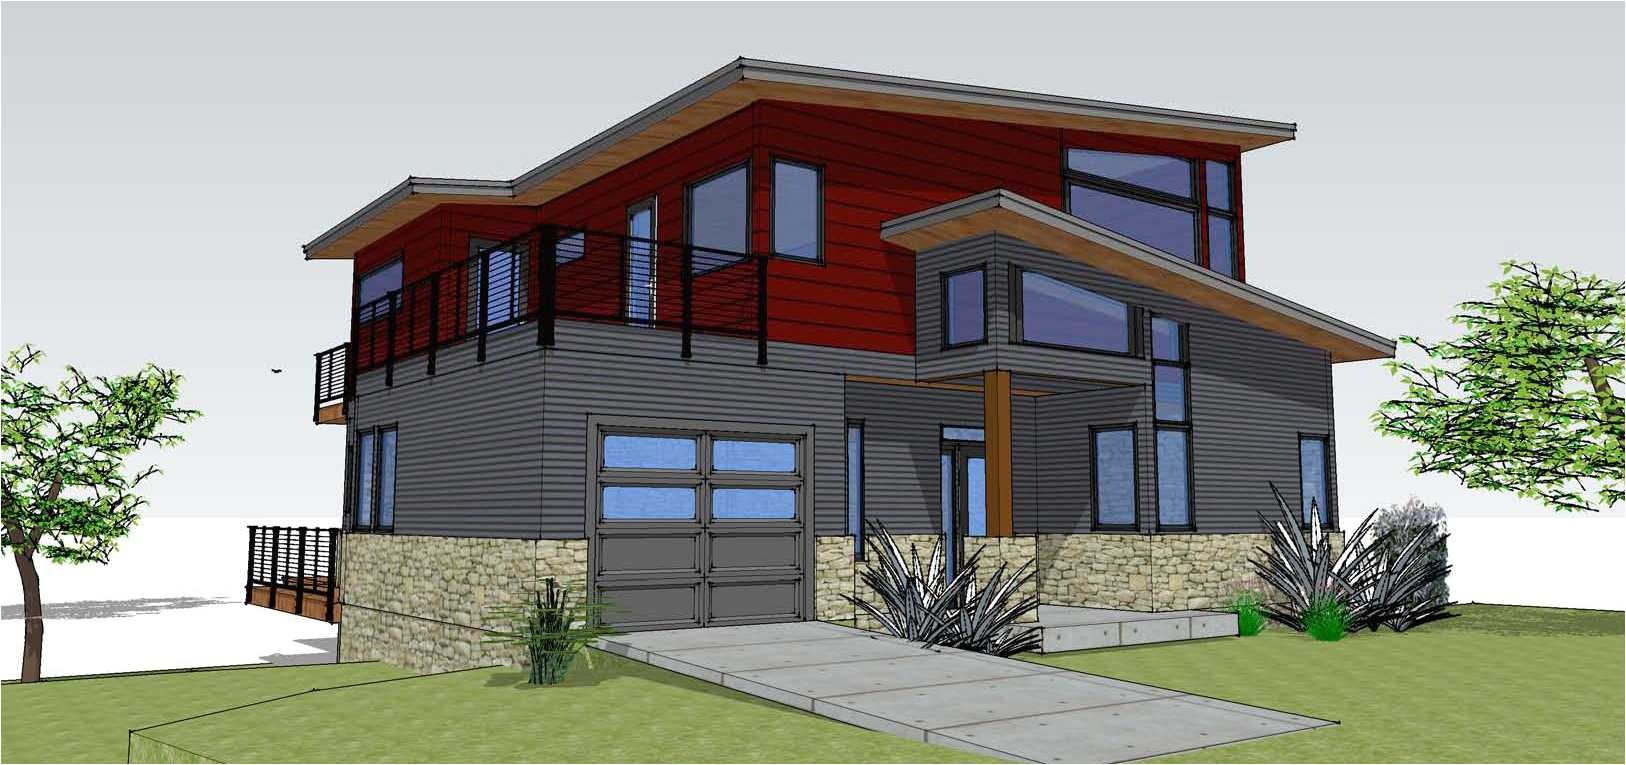 modern roof designs styles with apartments shed style house plans ideas pictures small floor loft lrg home including